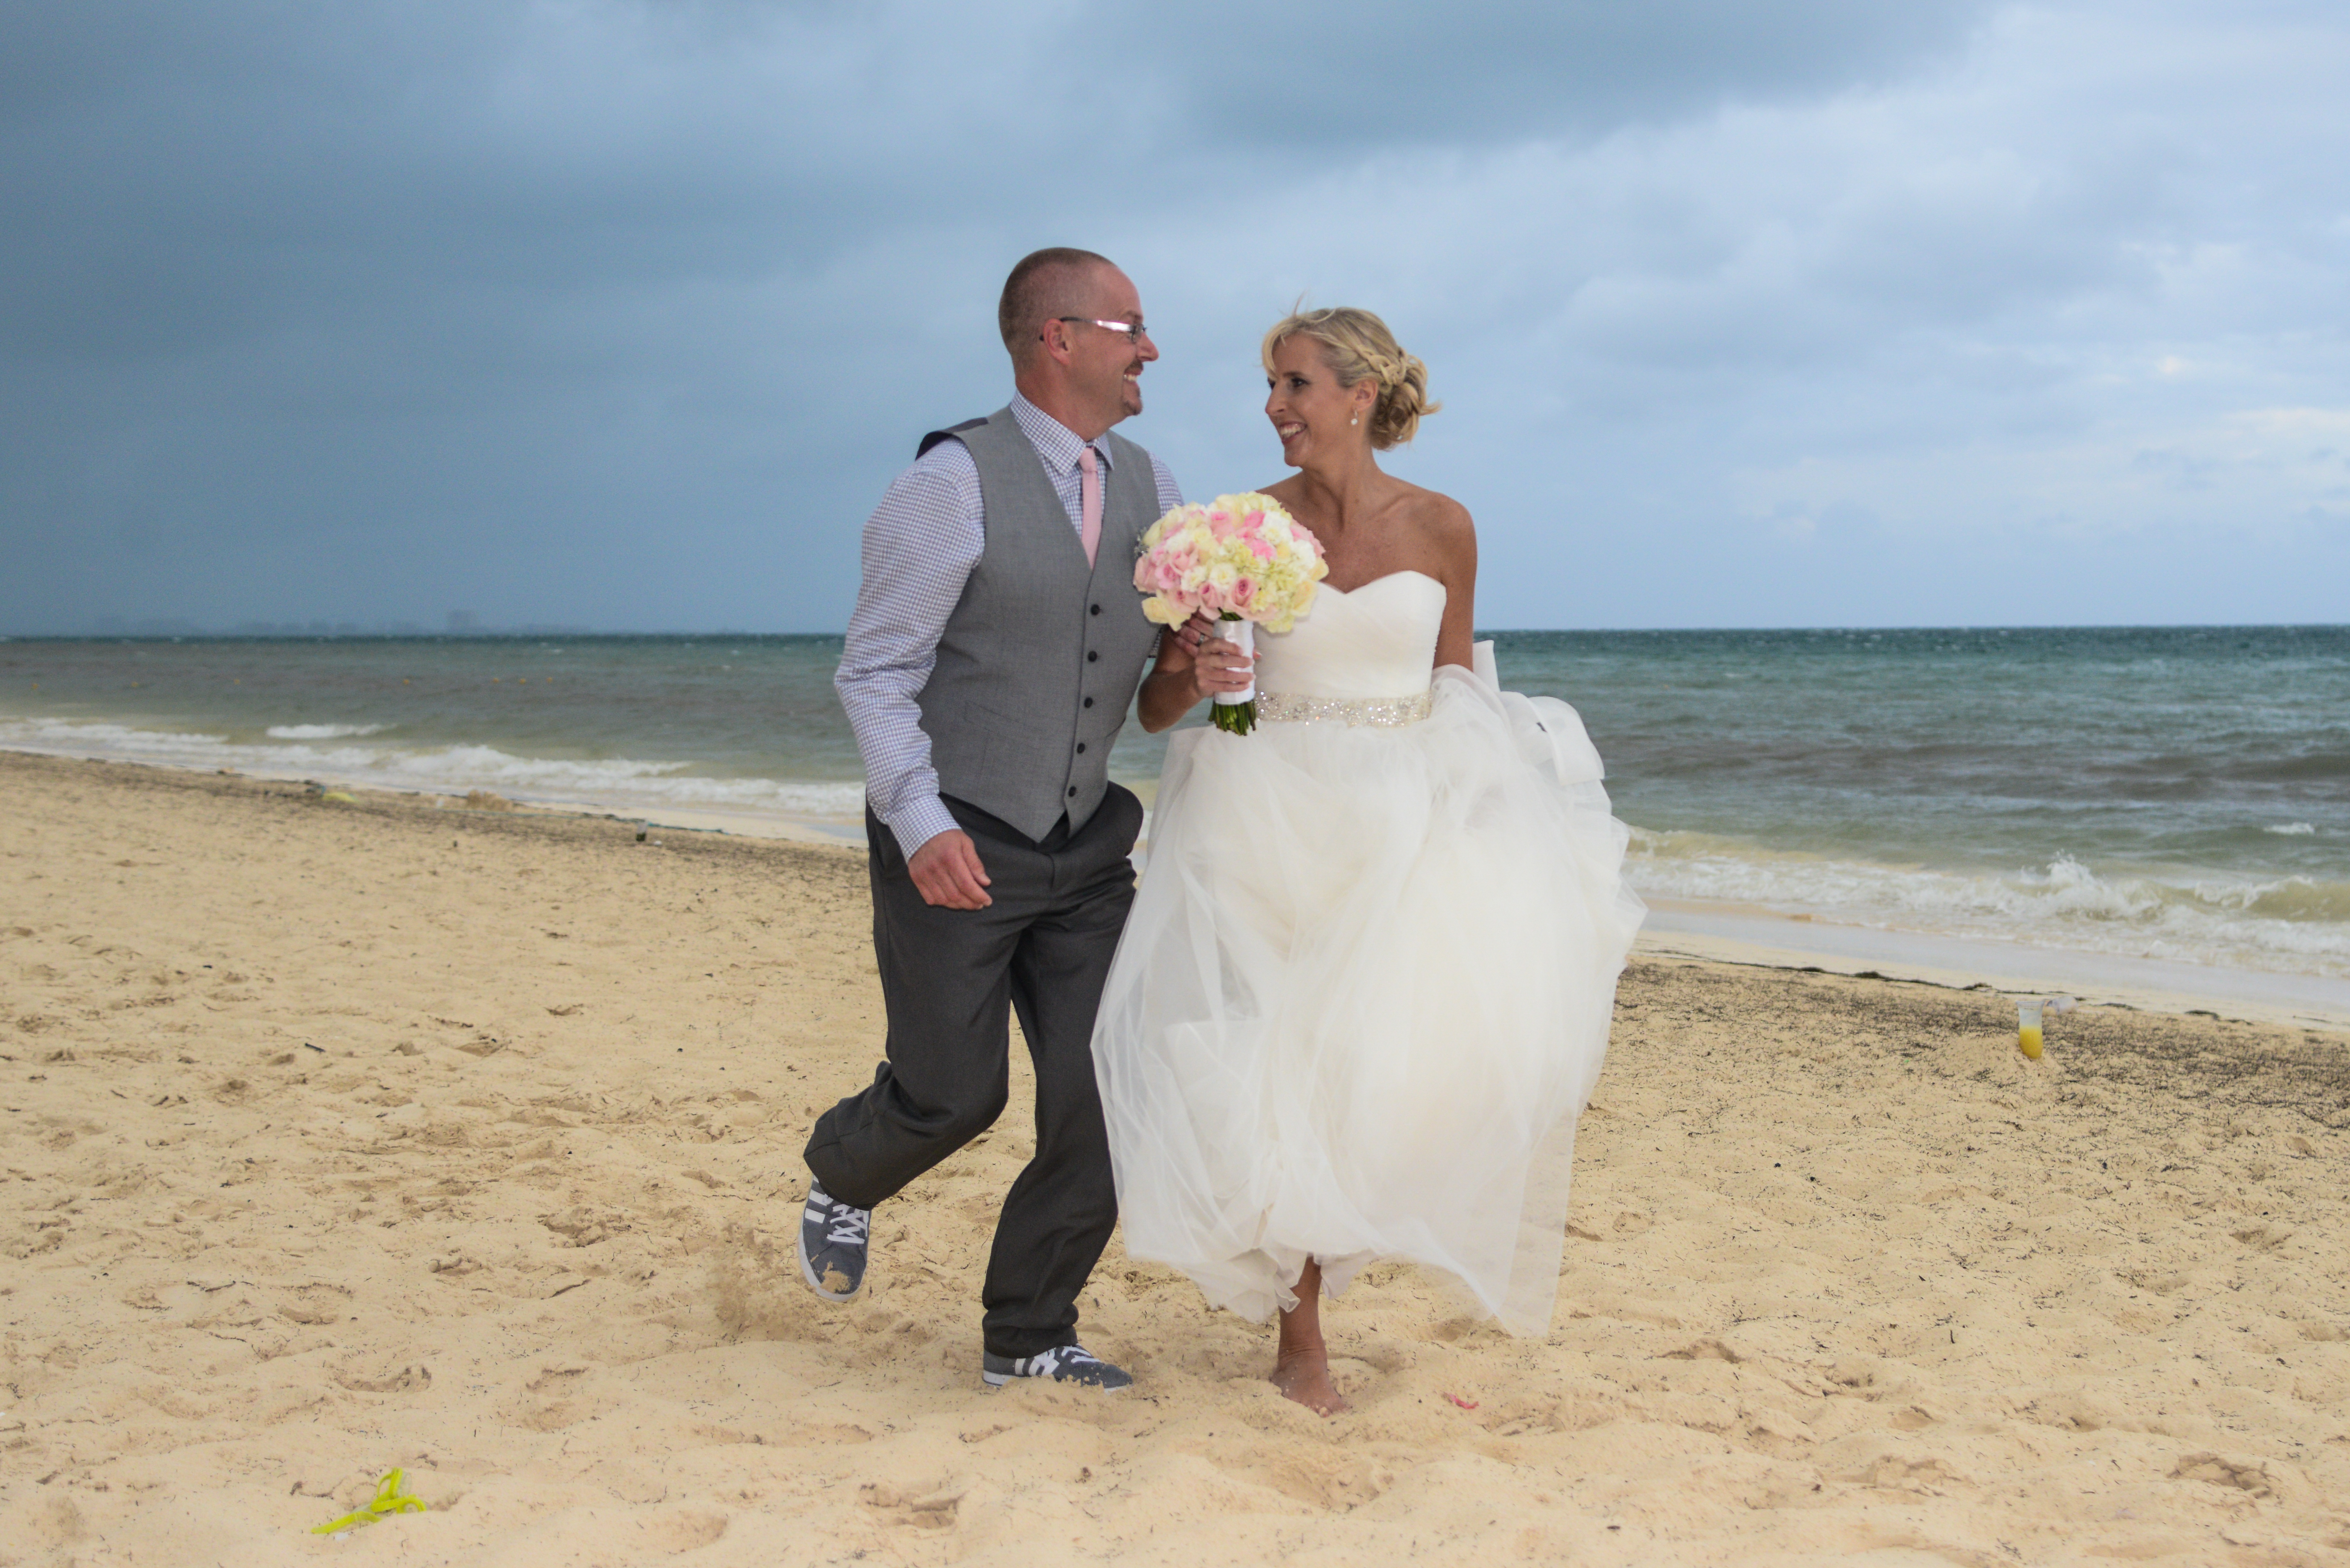 Fine Bride Groom Running On Beach Weddings By Funjet Download Free Architecture Designs Scobabritishbridgeorg